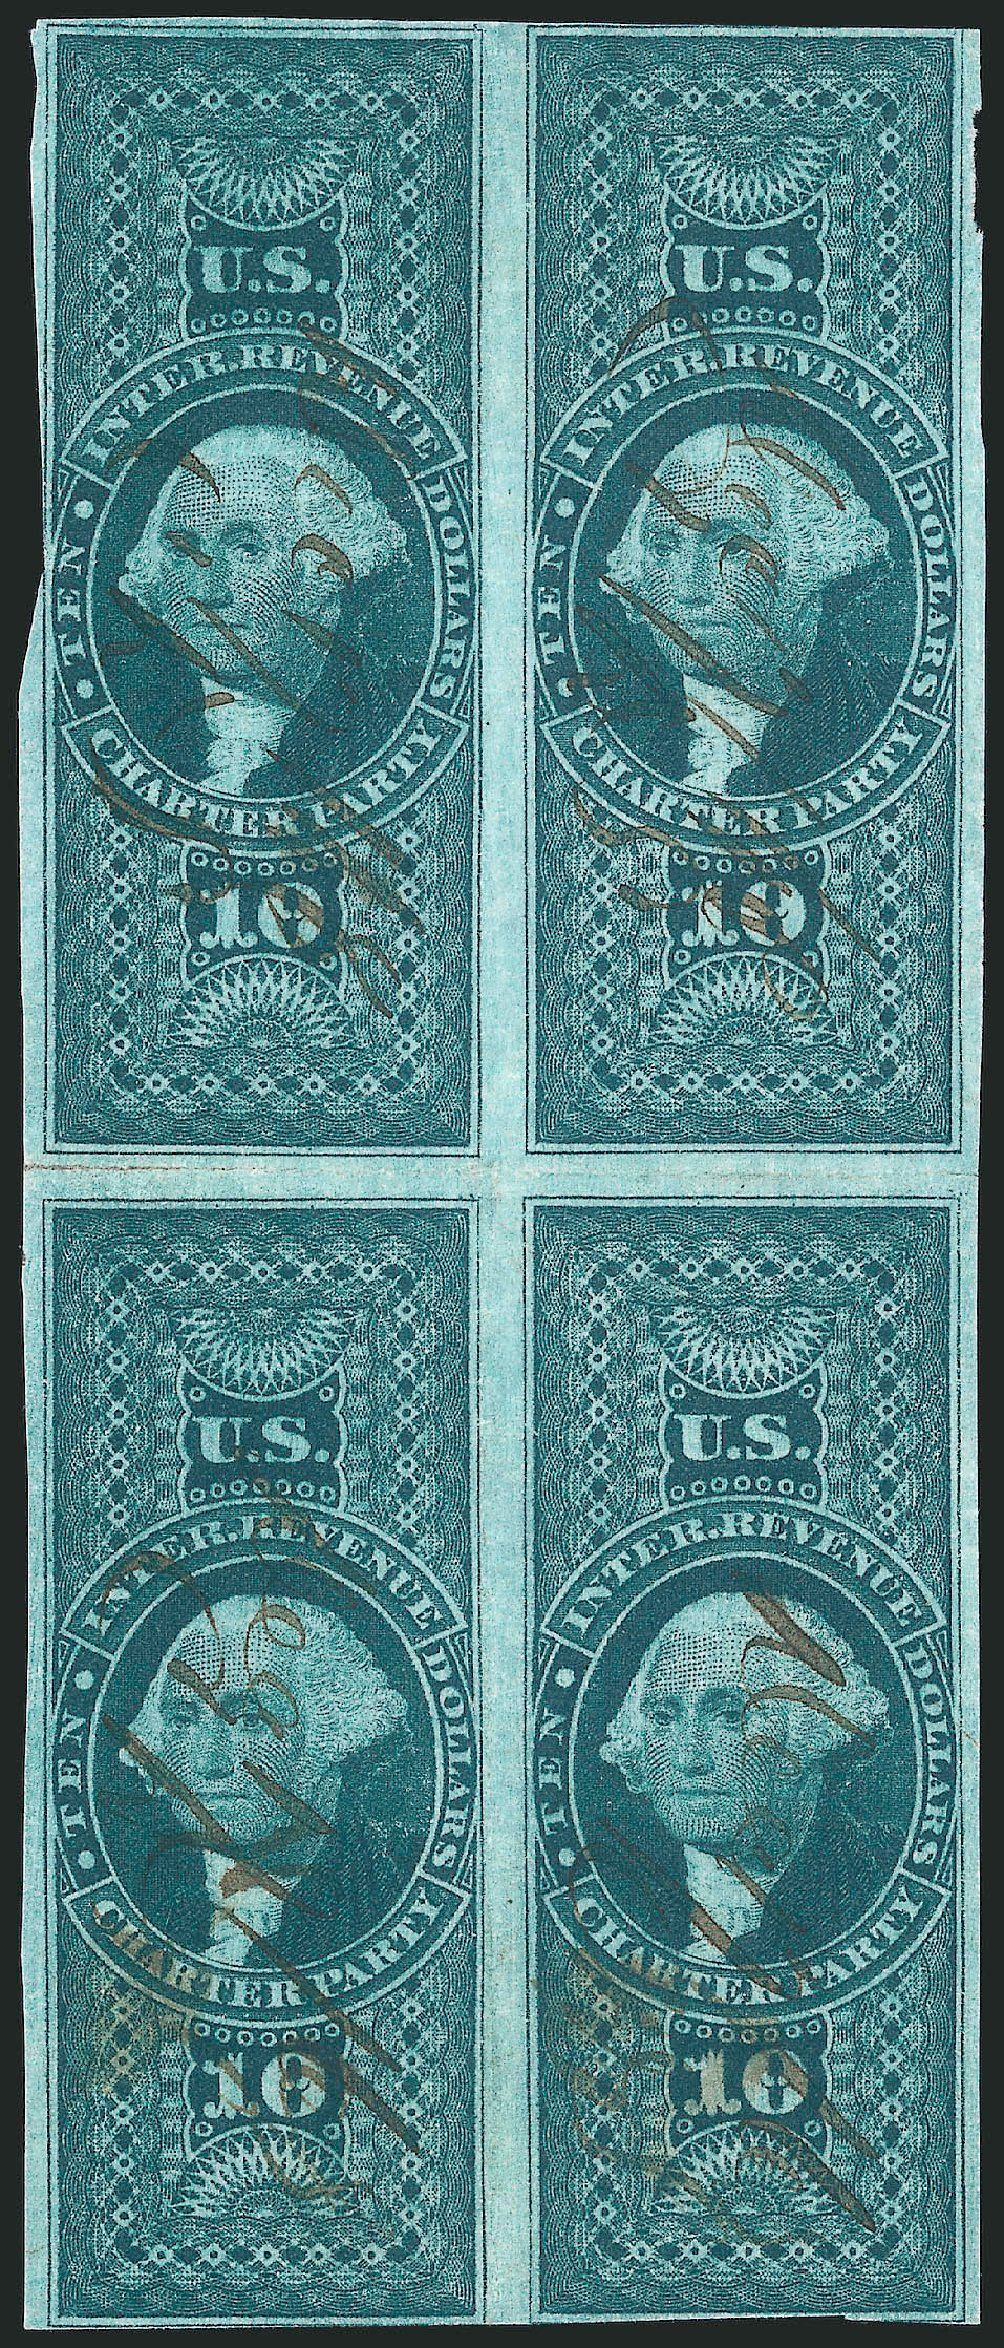 US Stamps Prices Scott Catalogue #R93 - 1862 US$10.00 Revenue Charter Party. Robert Siegel Auction Galleries, Dec 2014, Sale 1089, Lot 374